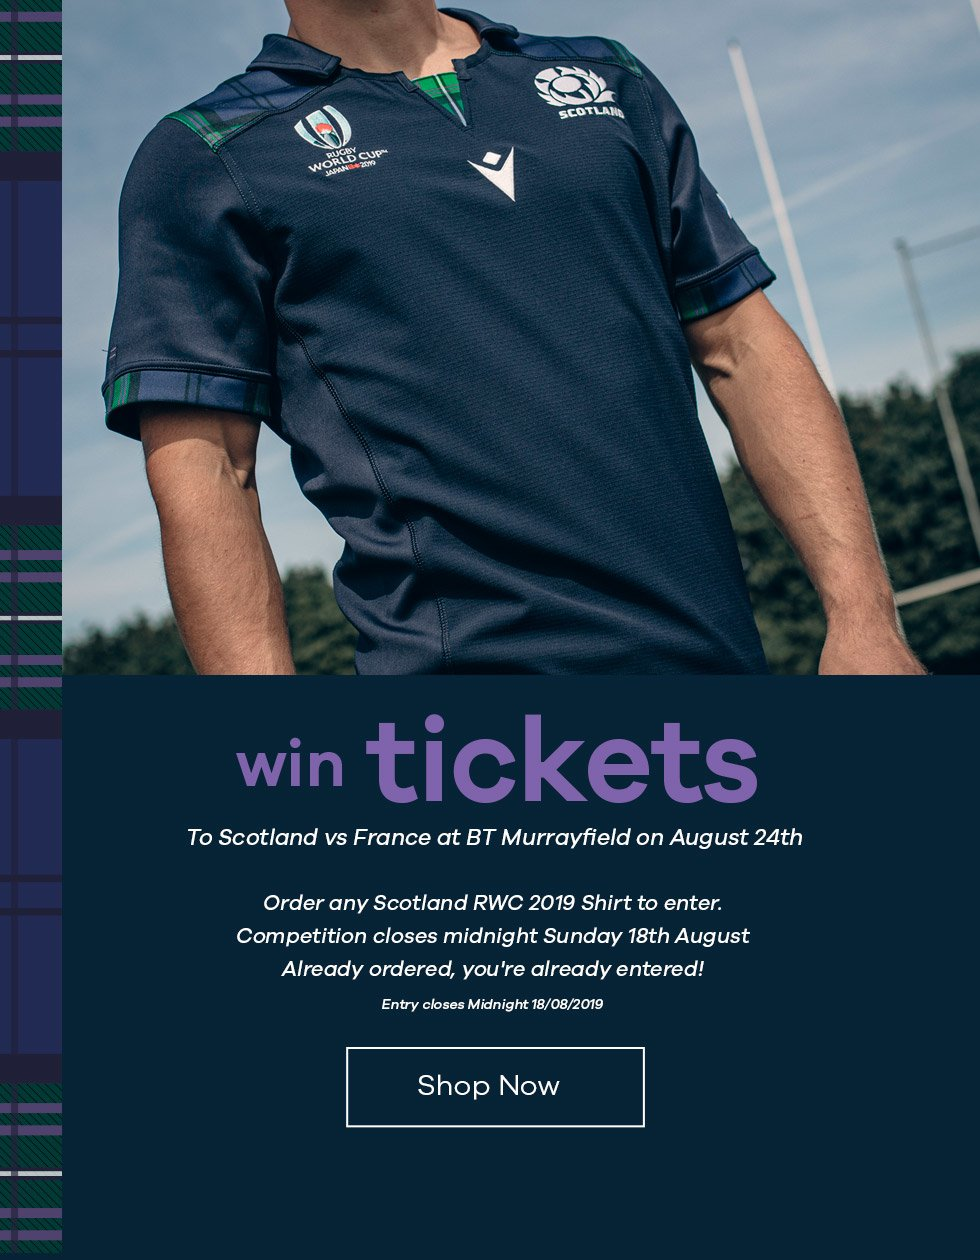 Lovell Rugby – Rugby Shirts, Boots, Coaching, Training Equipment & more